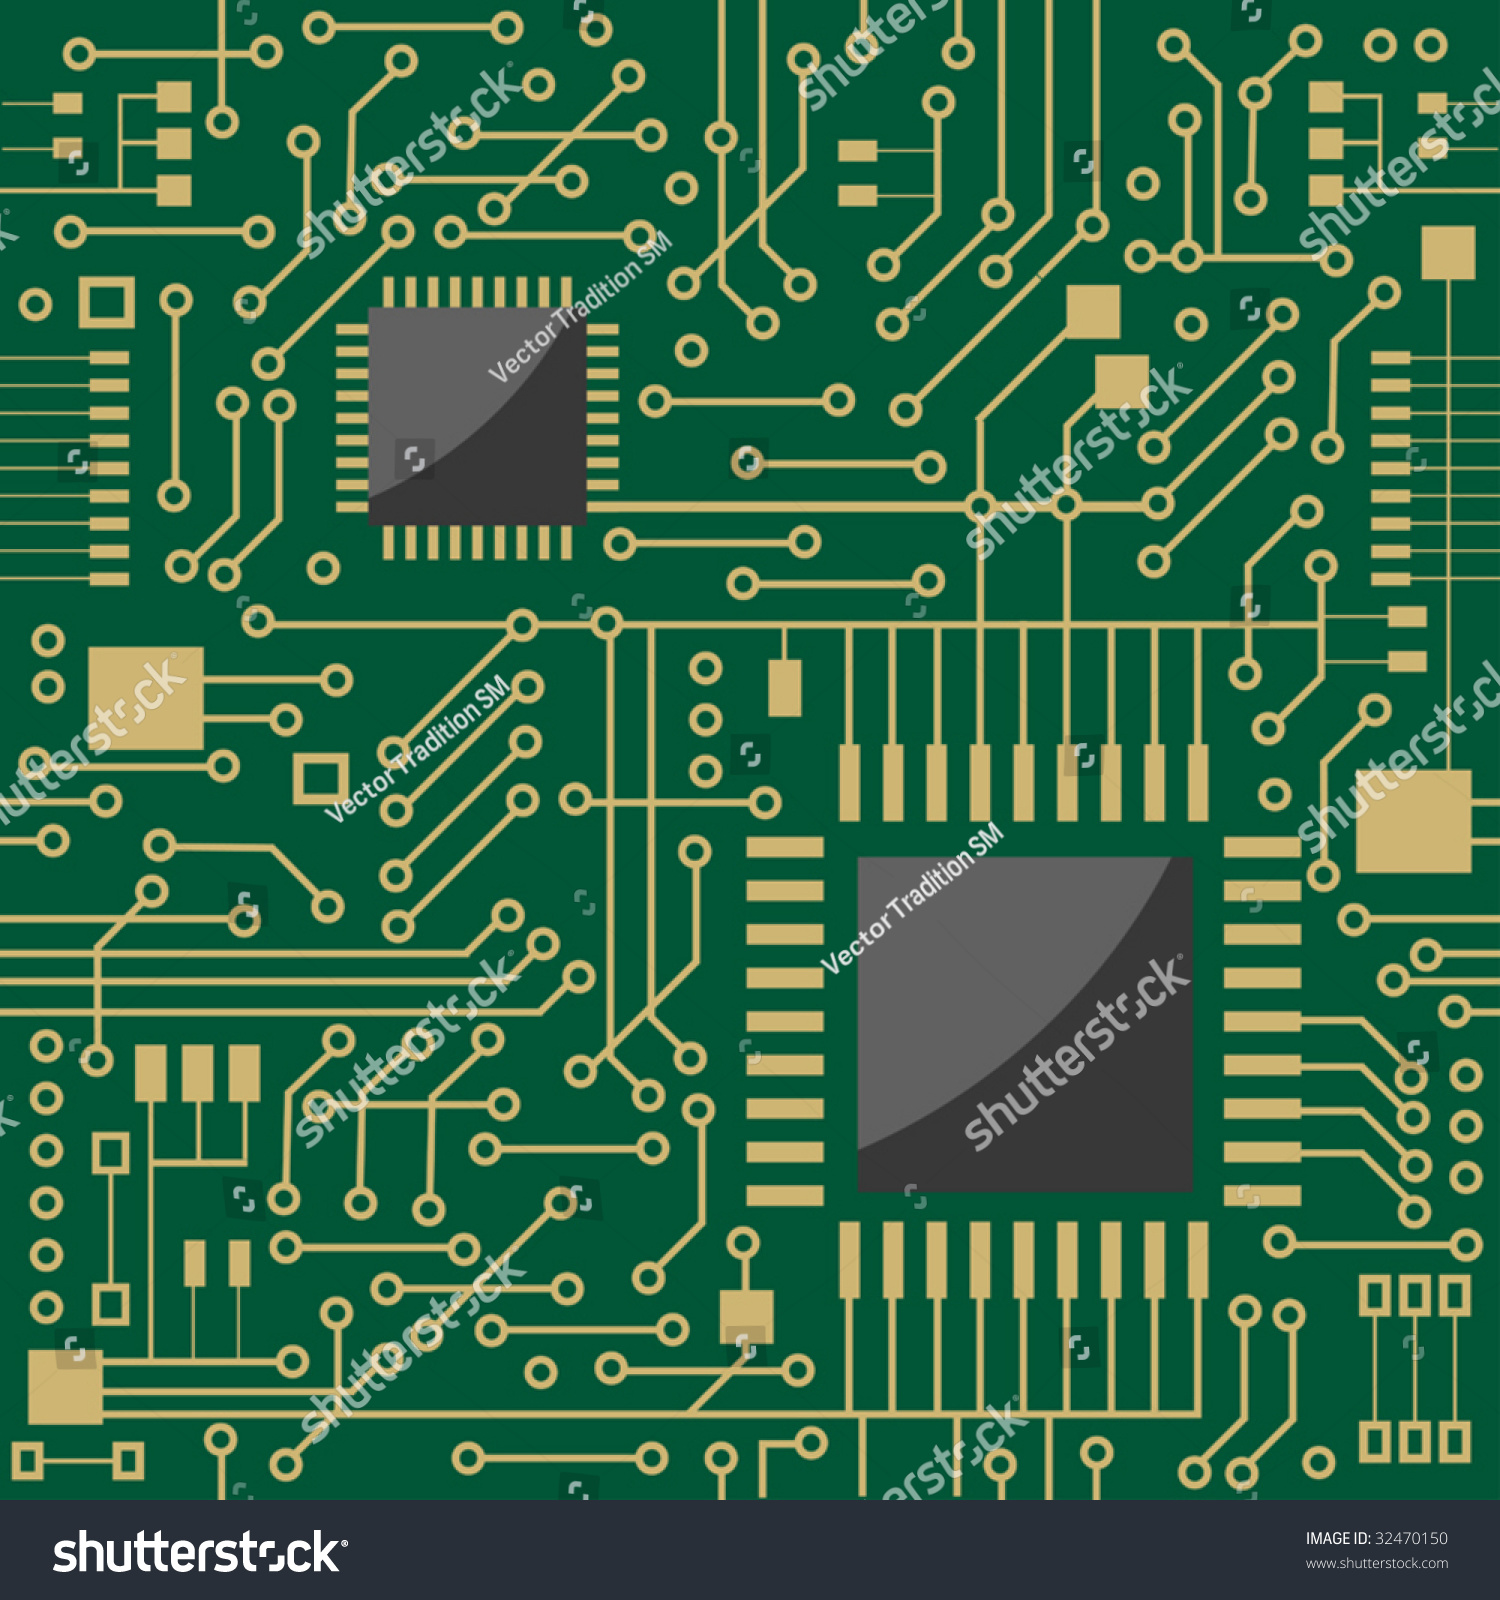 motherboard circuit diagram simple relay seamless background showing schematic electronic